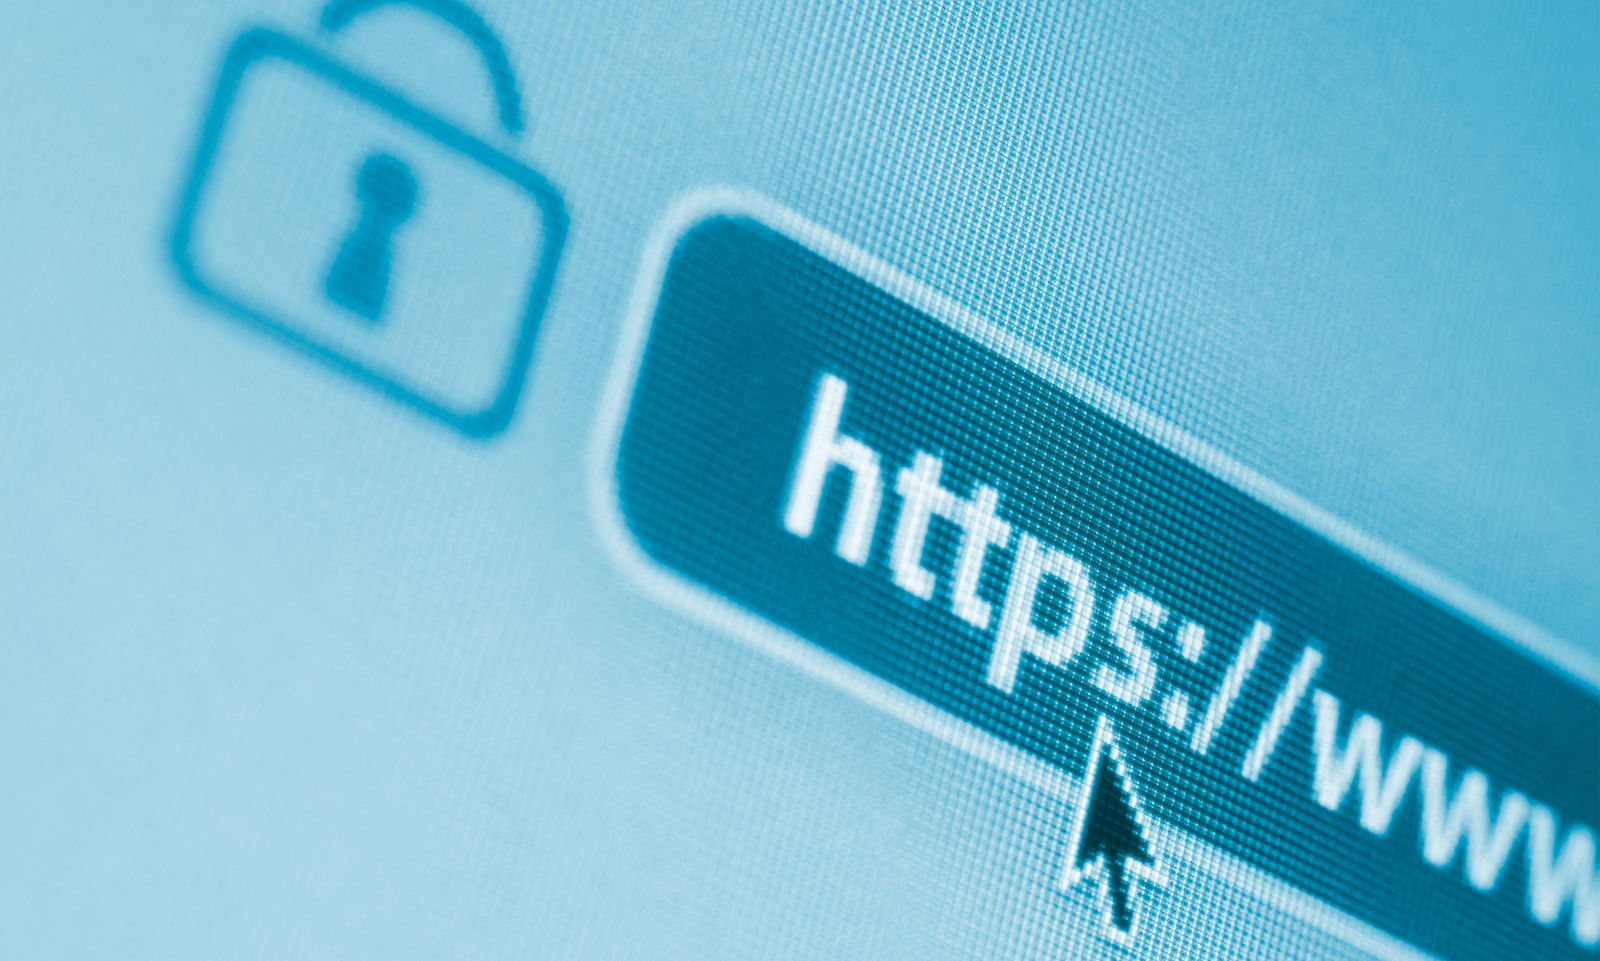 Starting July 2018, Google's Chrome browser will mark non-HTTPS sites as 'not secure'